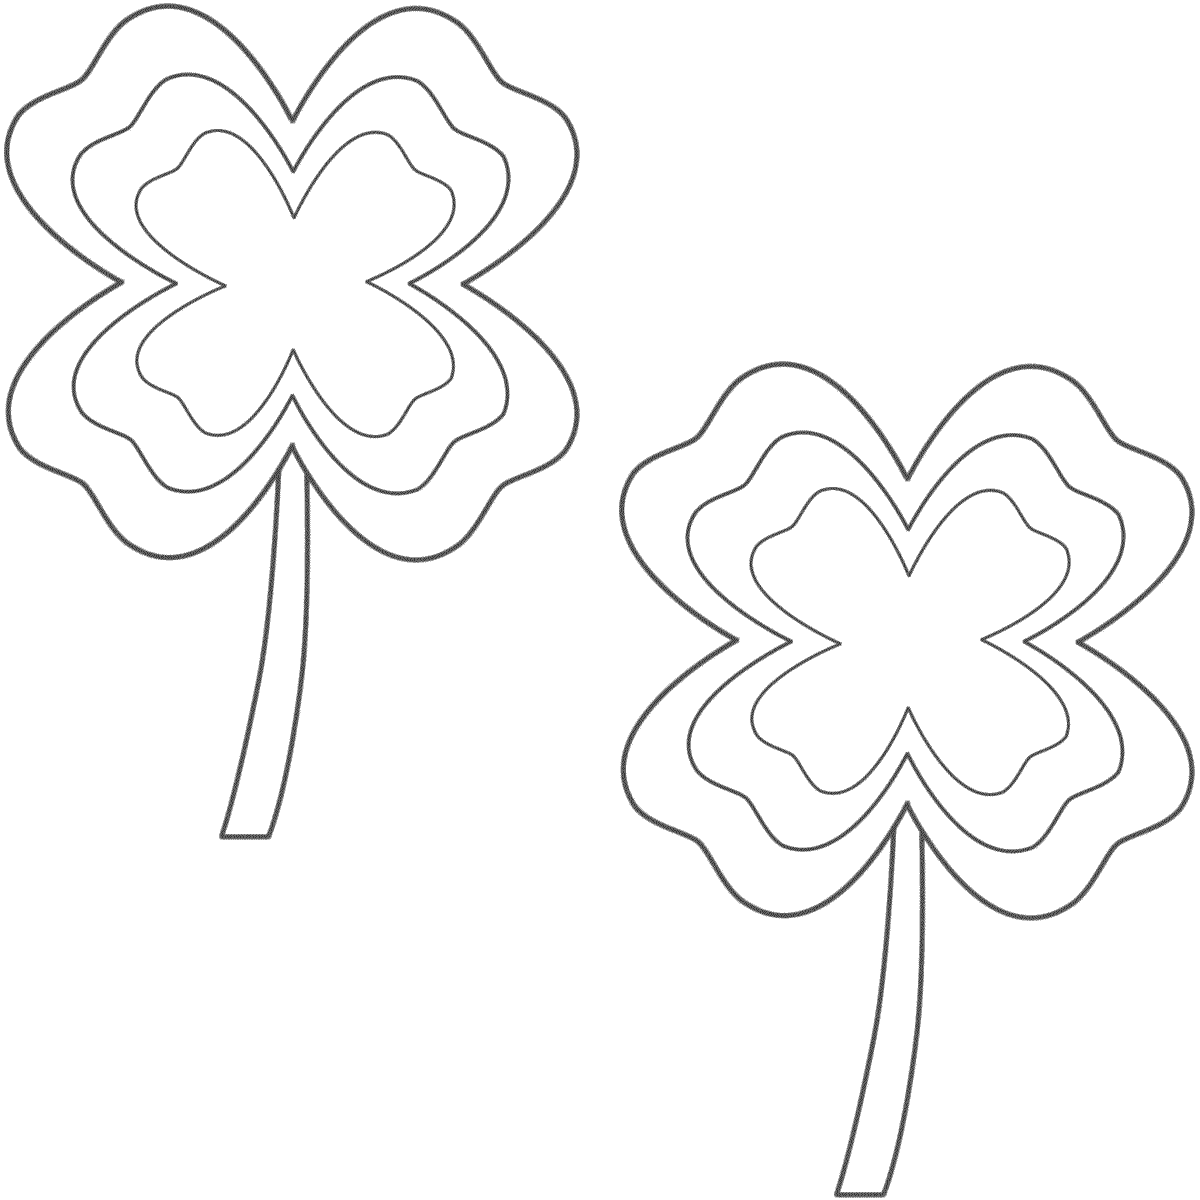 Four Leaf Clovers With Multi Border 2